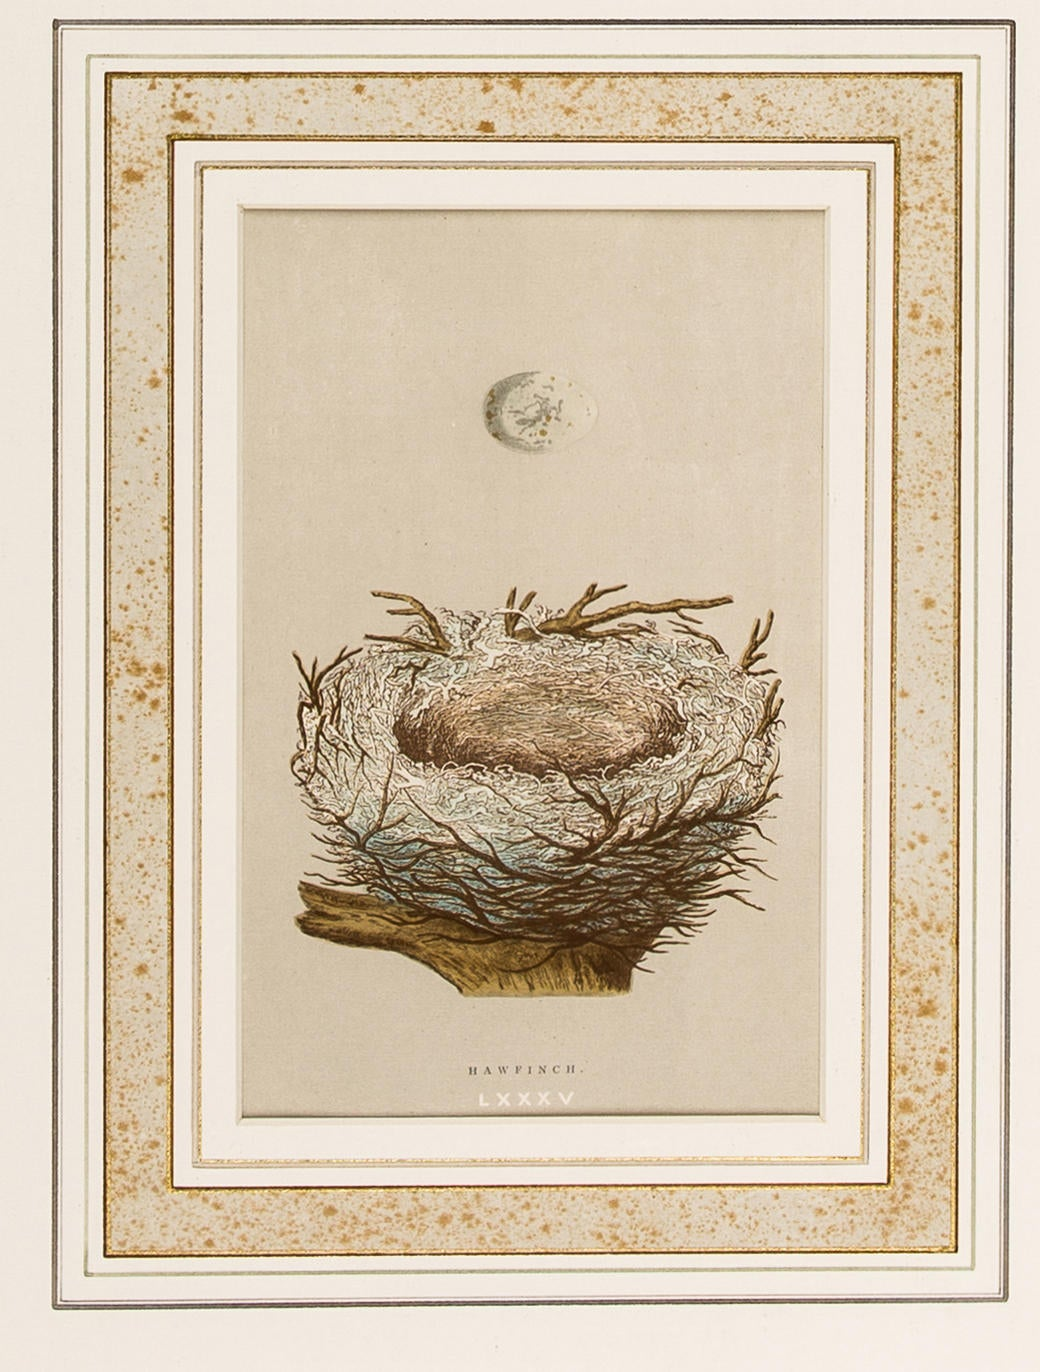 Hawfinch Nest Print Decor And Accessories Decor21230